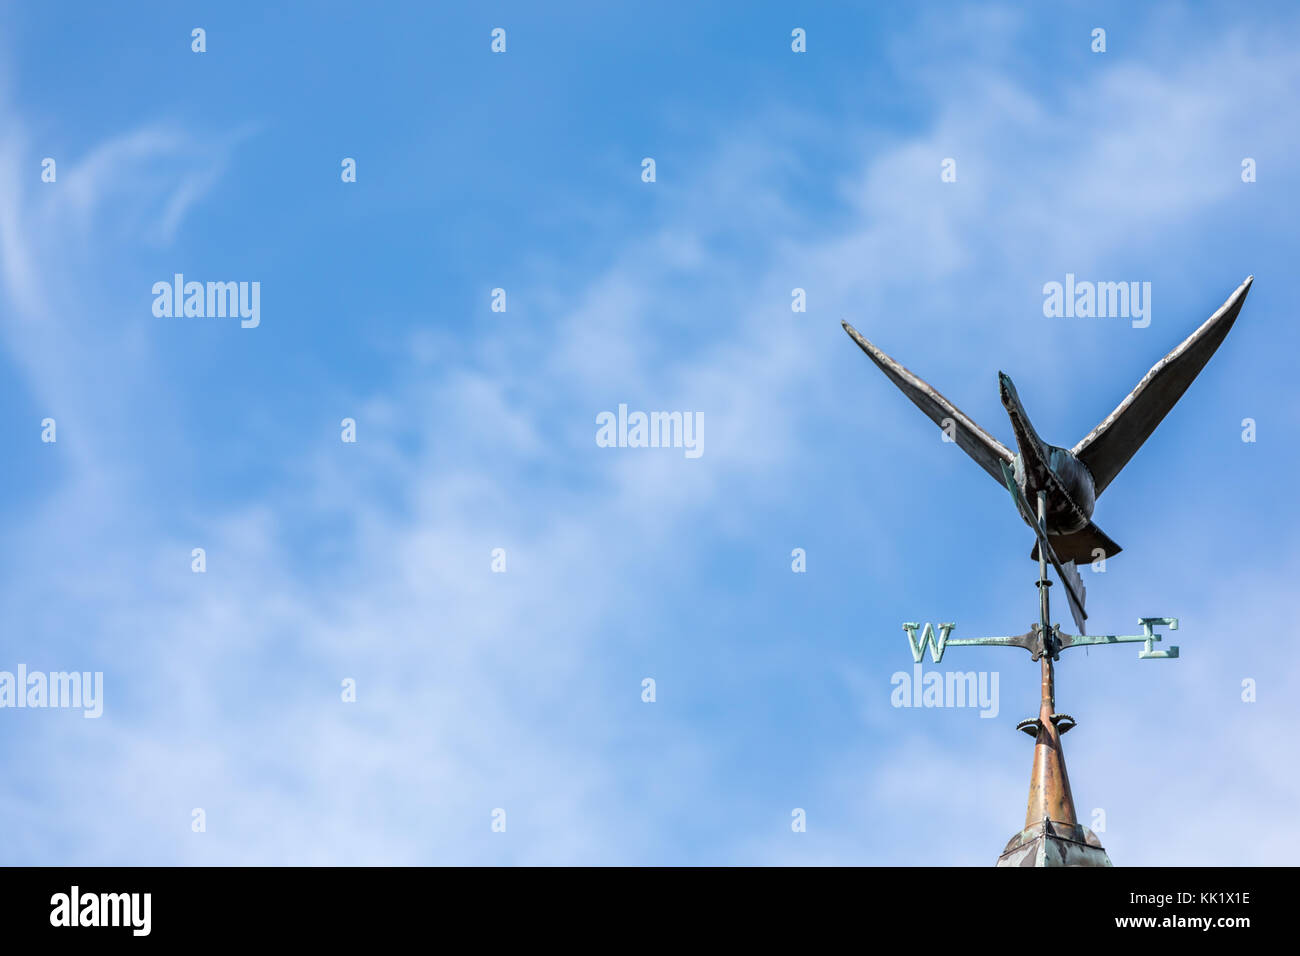 flying goose weather vane against a blue sky in east hampton, ny - Stock Image